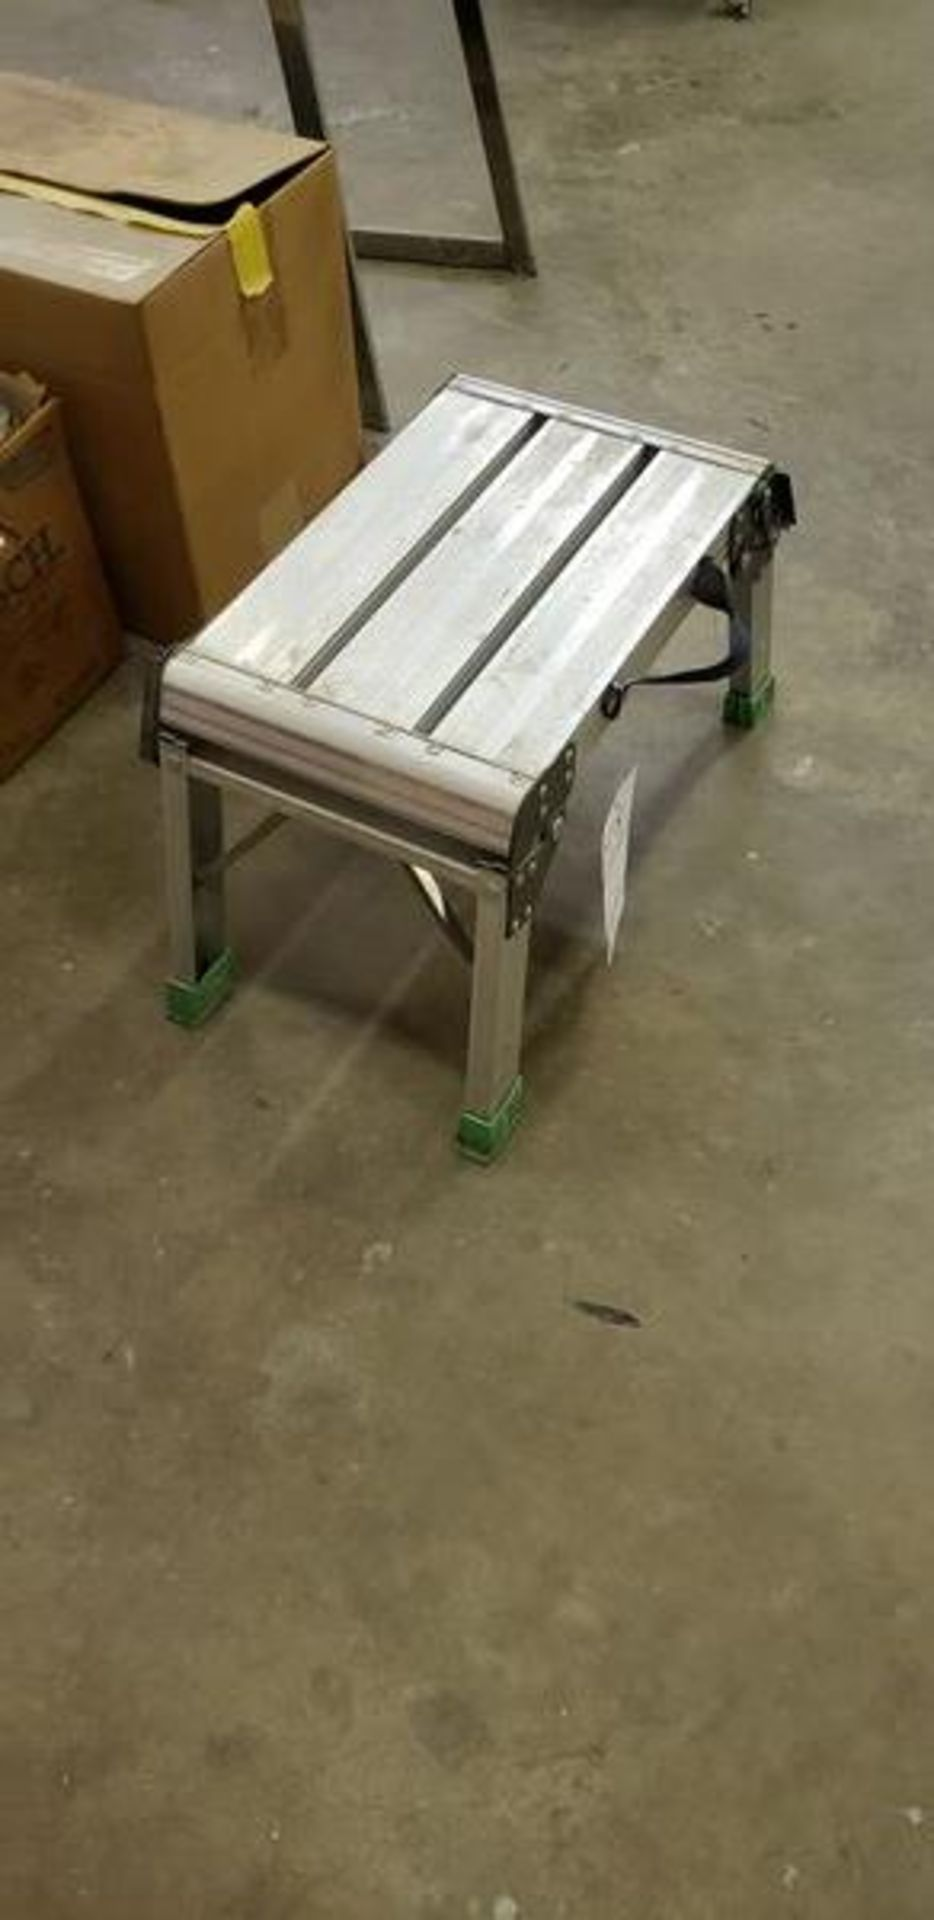 FOLD DOWN STEP STOOL - Image 2 of 2